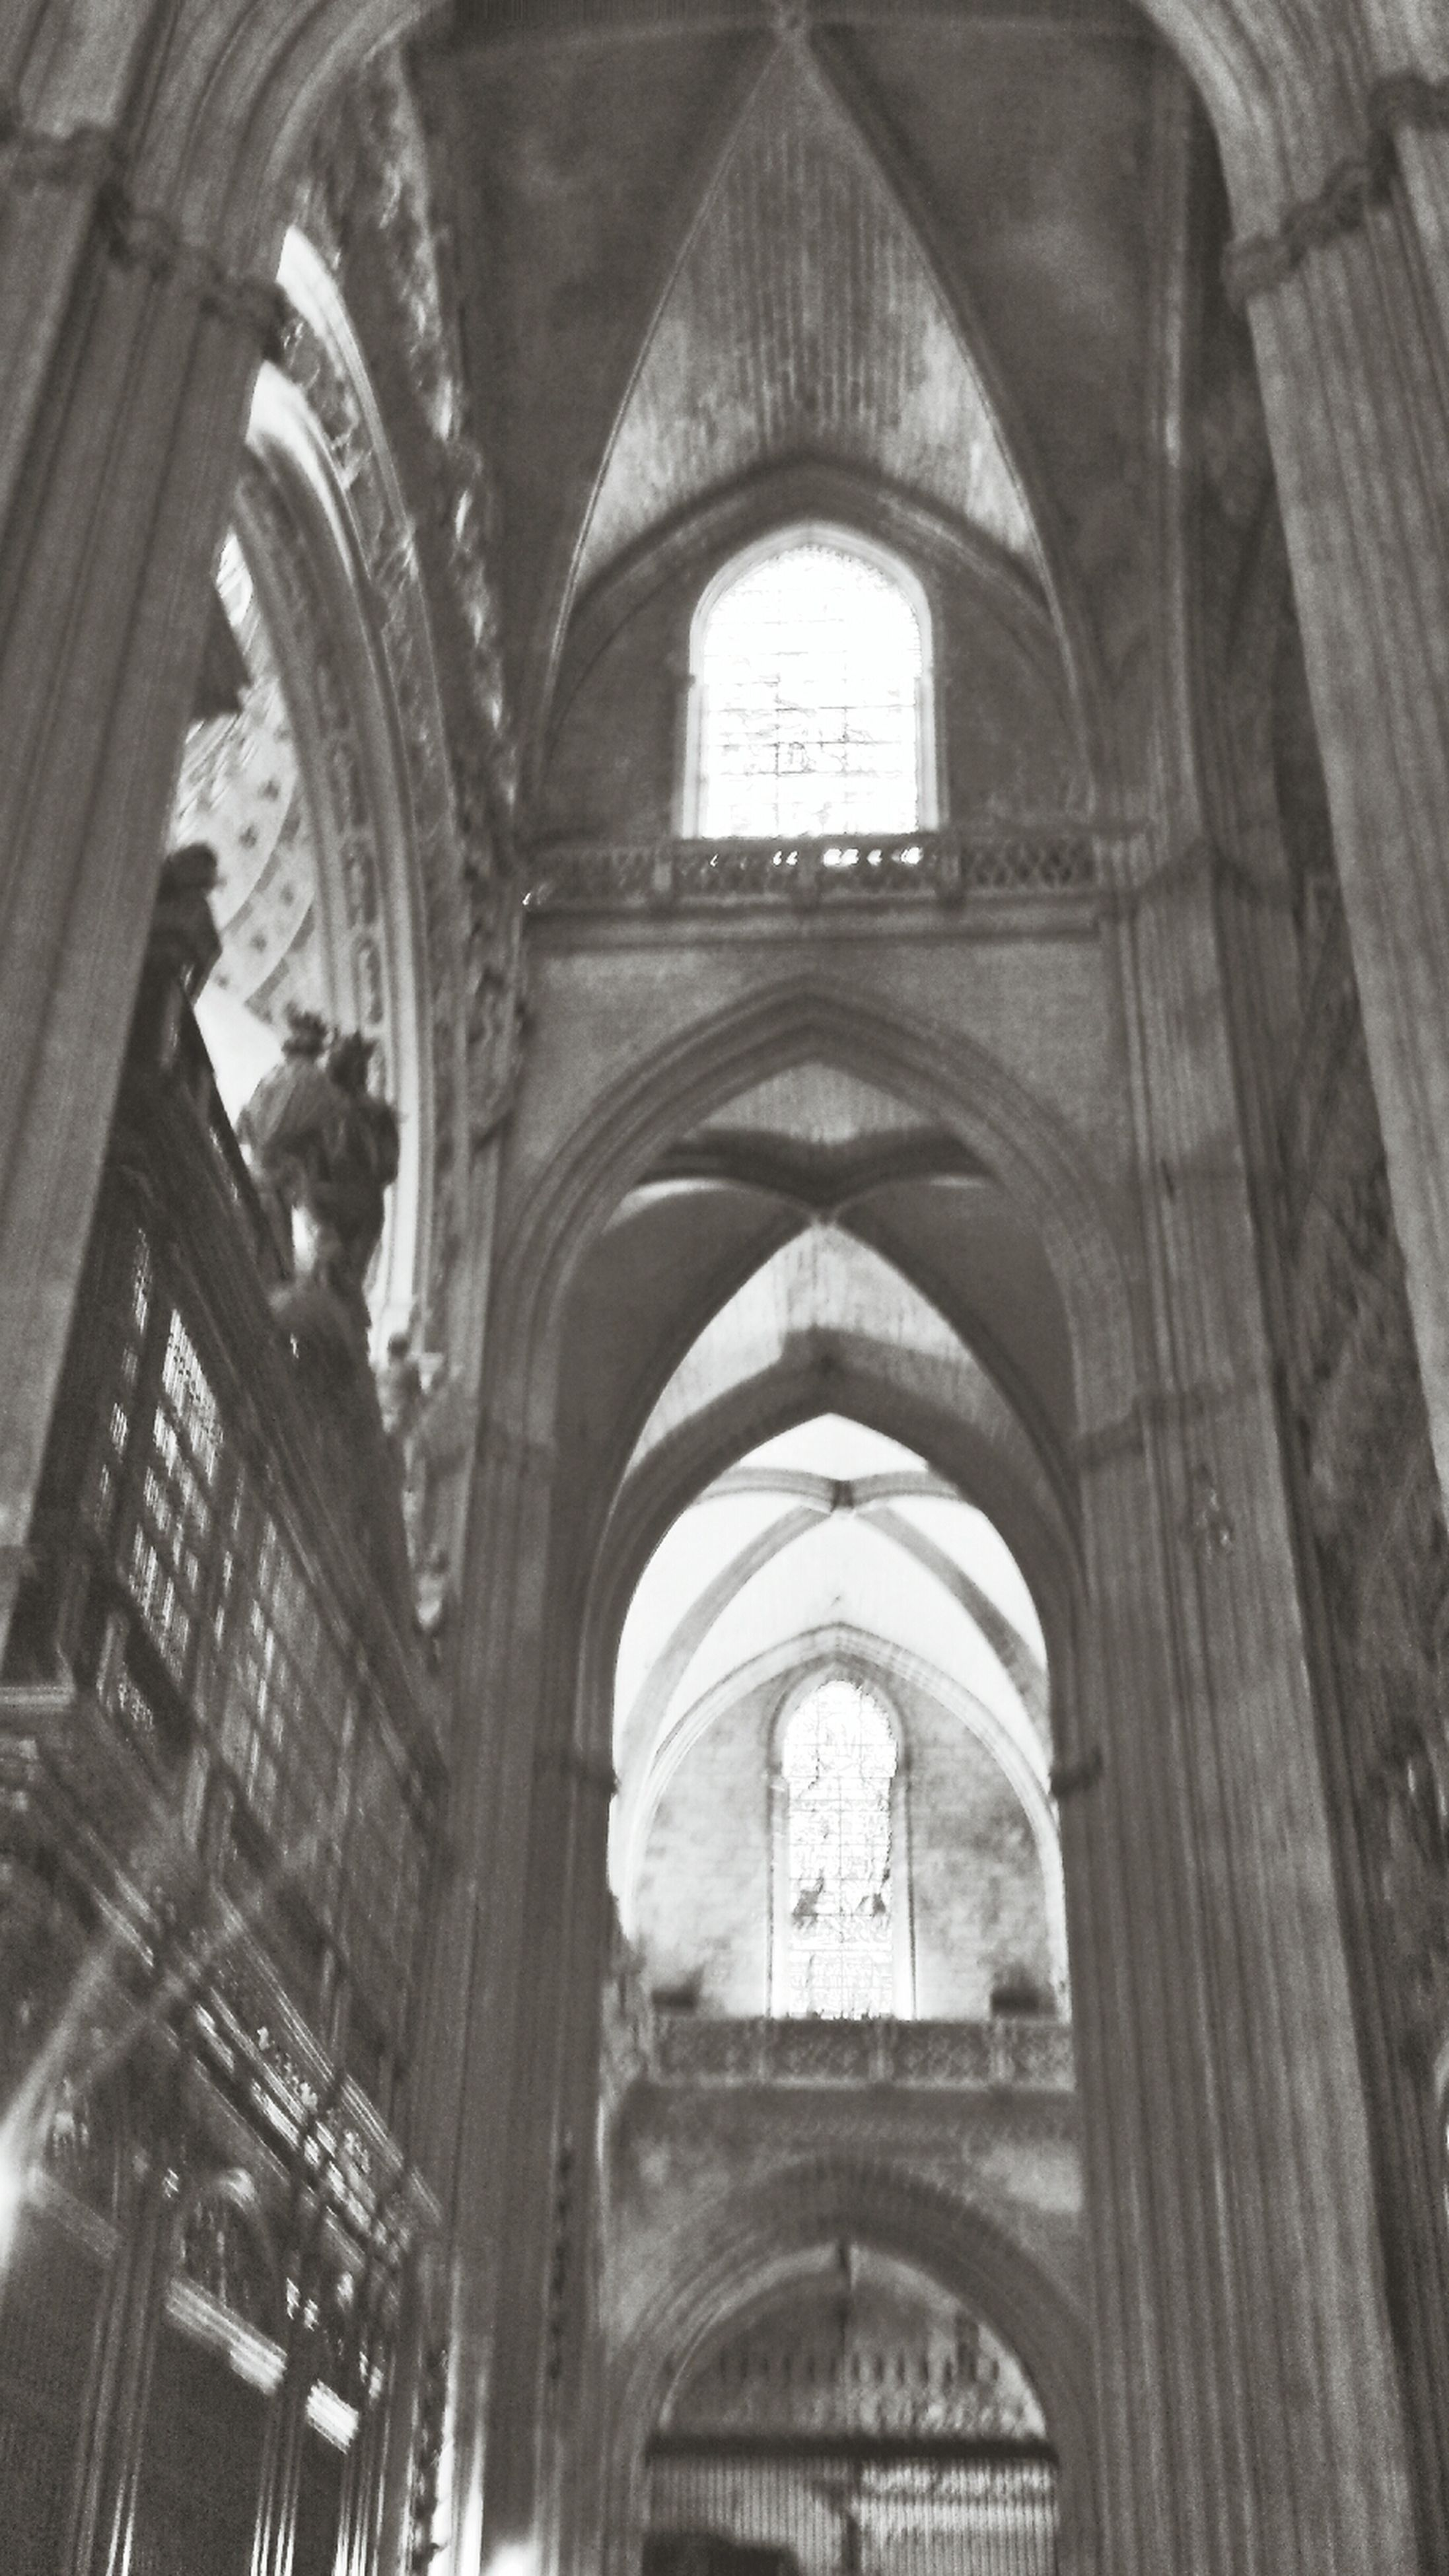 arch, indoors, architecture, church, place of worship, religion, built structure, spirituality, low angle view, cathedral, history, interior, window, old, ceiling, architectural column, no people, architectural feature